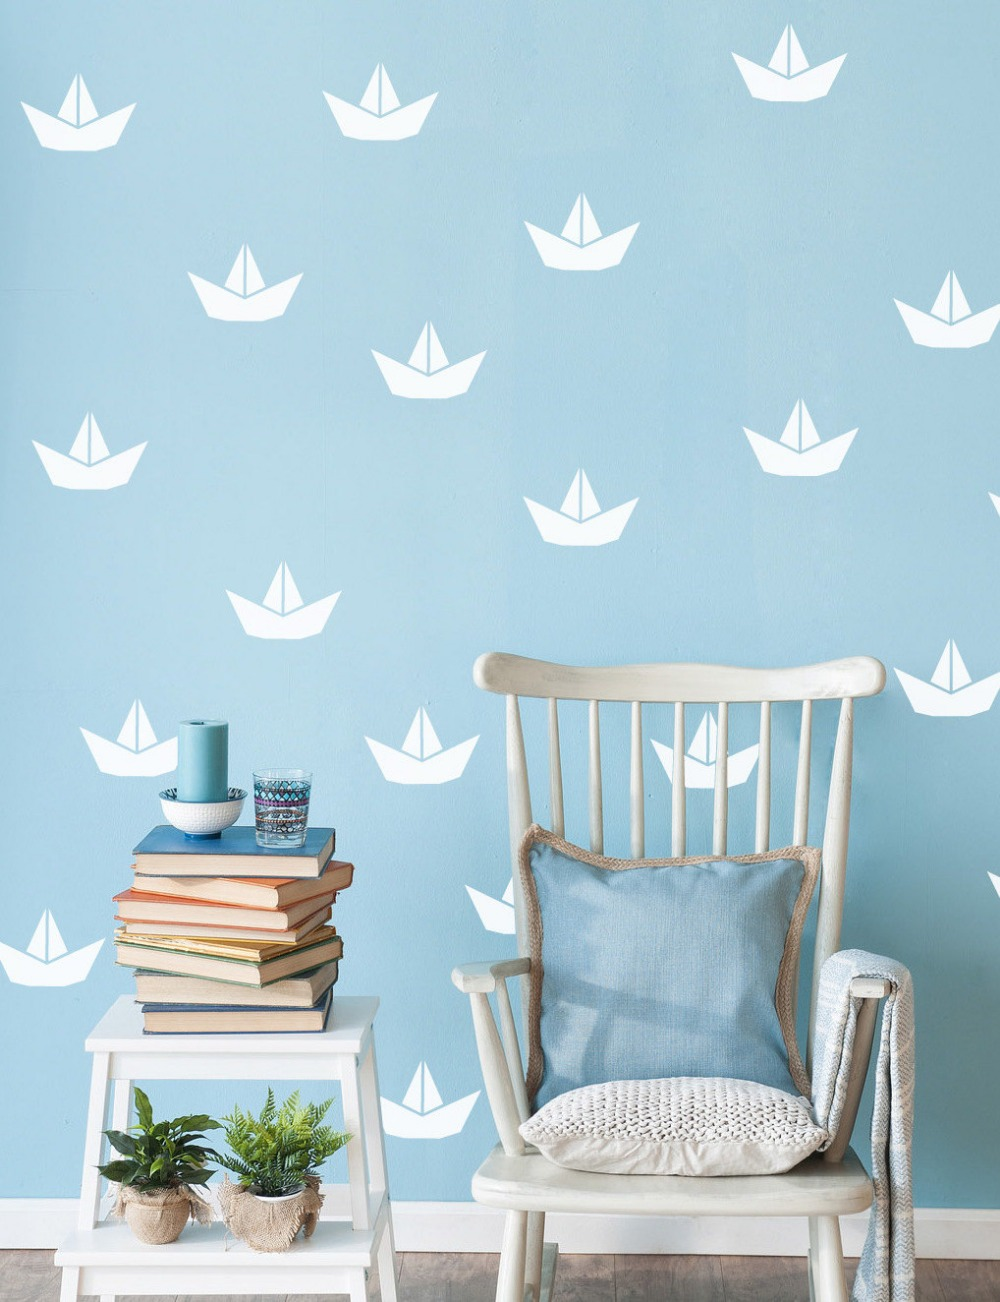 Nautical Wall Stickers Part - 44: Nautical Wall Decal White Paper Boat Wall Stickers For Kids Room Boy Girl  Home Decor Bedroom Removable Waterproof Wallpaper D967-in Wall Stickers  From Home ...